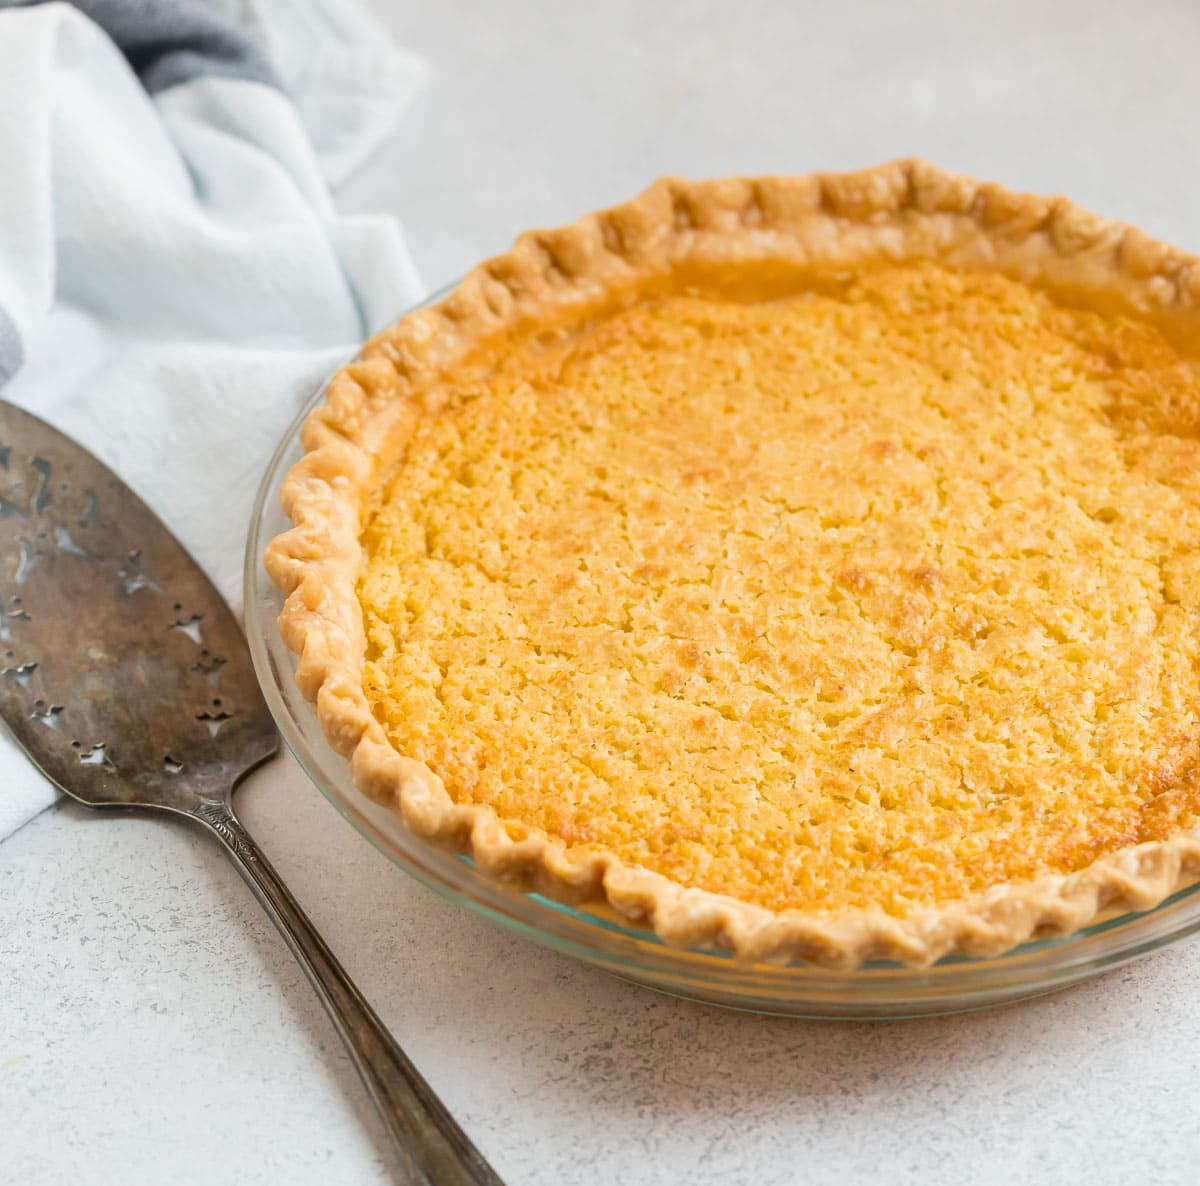 Delicious old fashioned buttermilk pie served in a pie dish